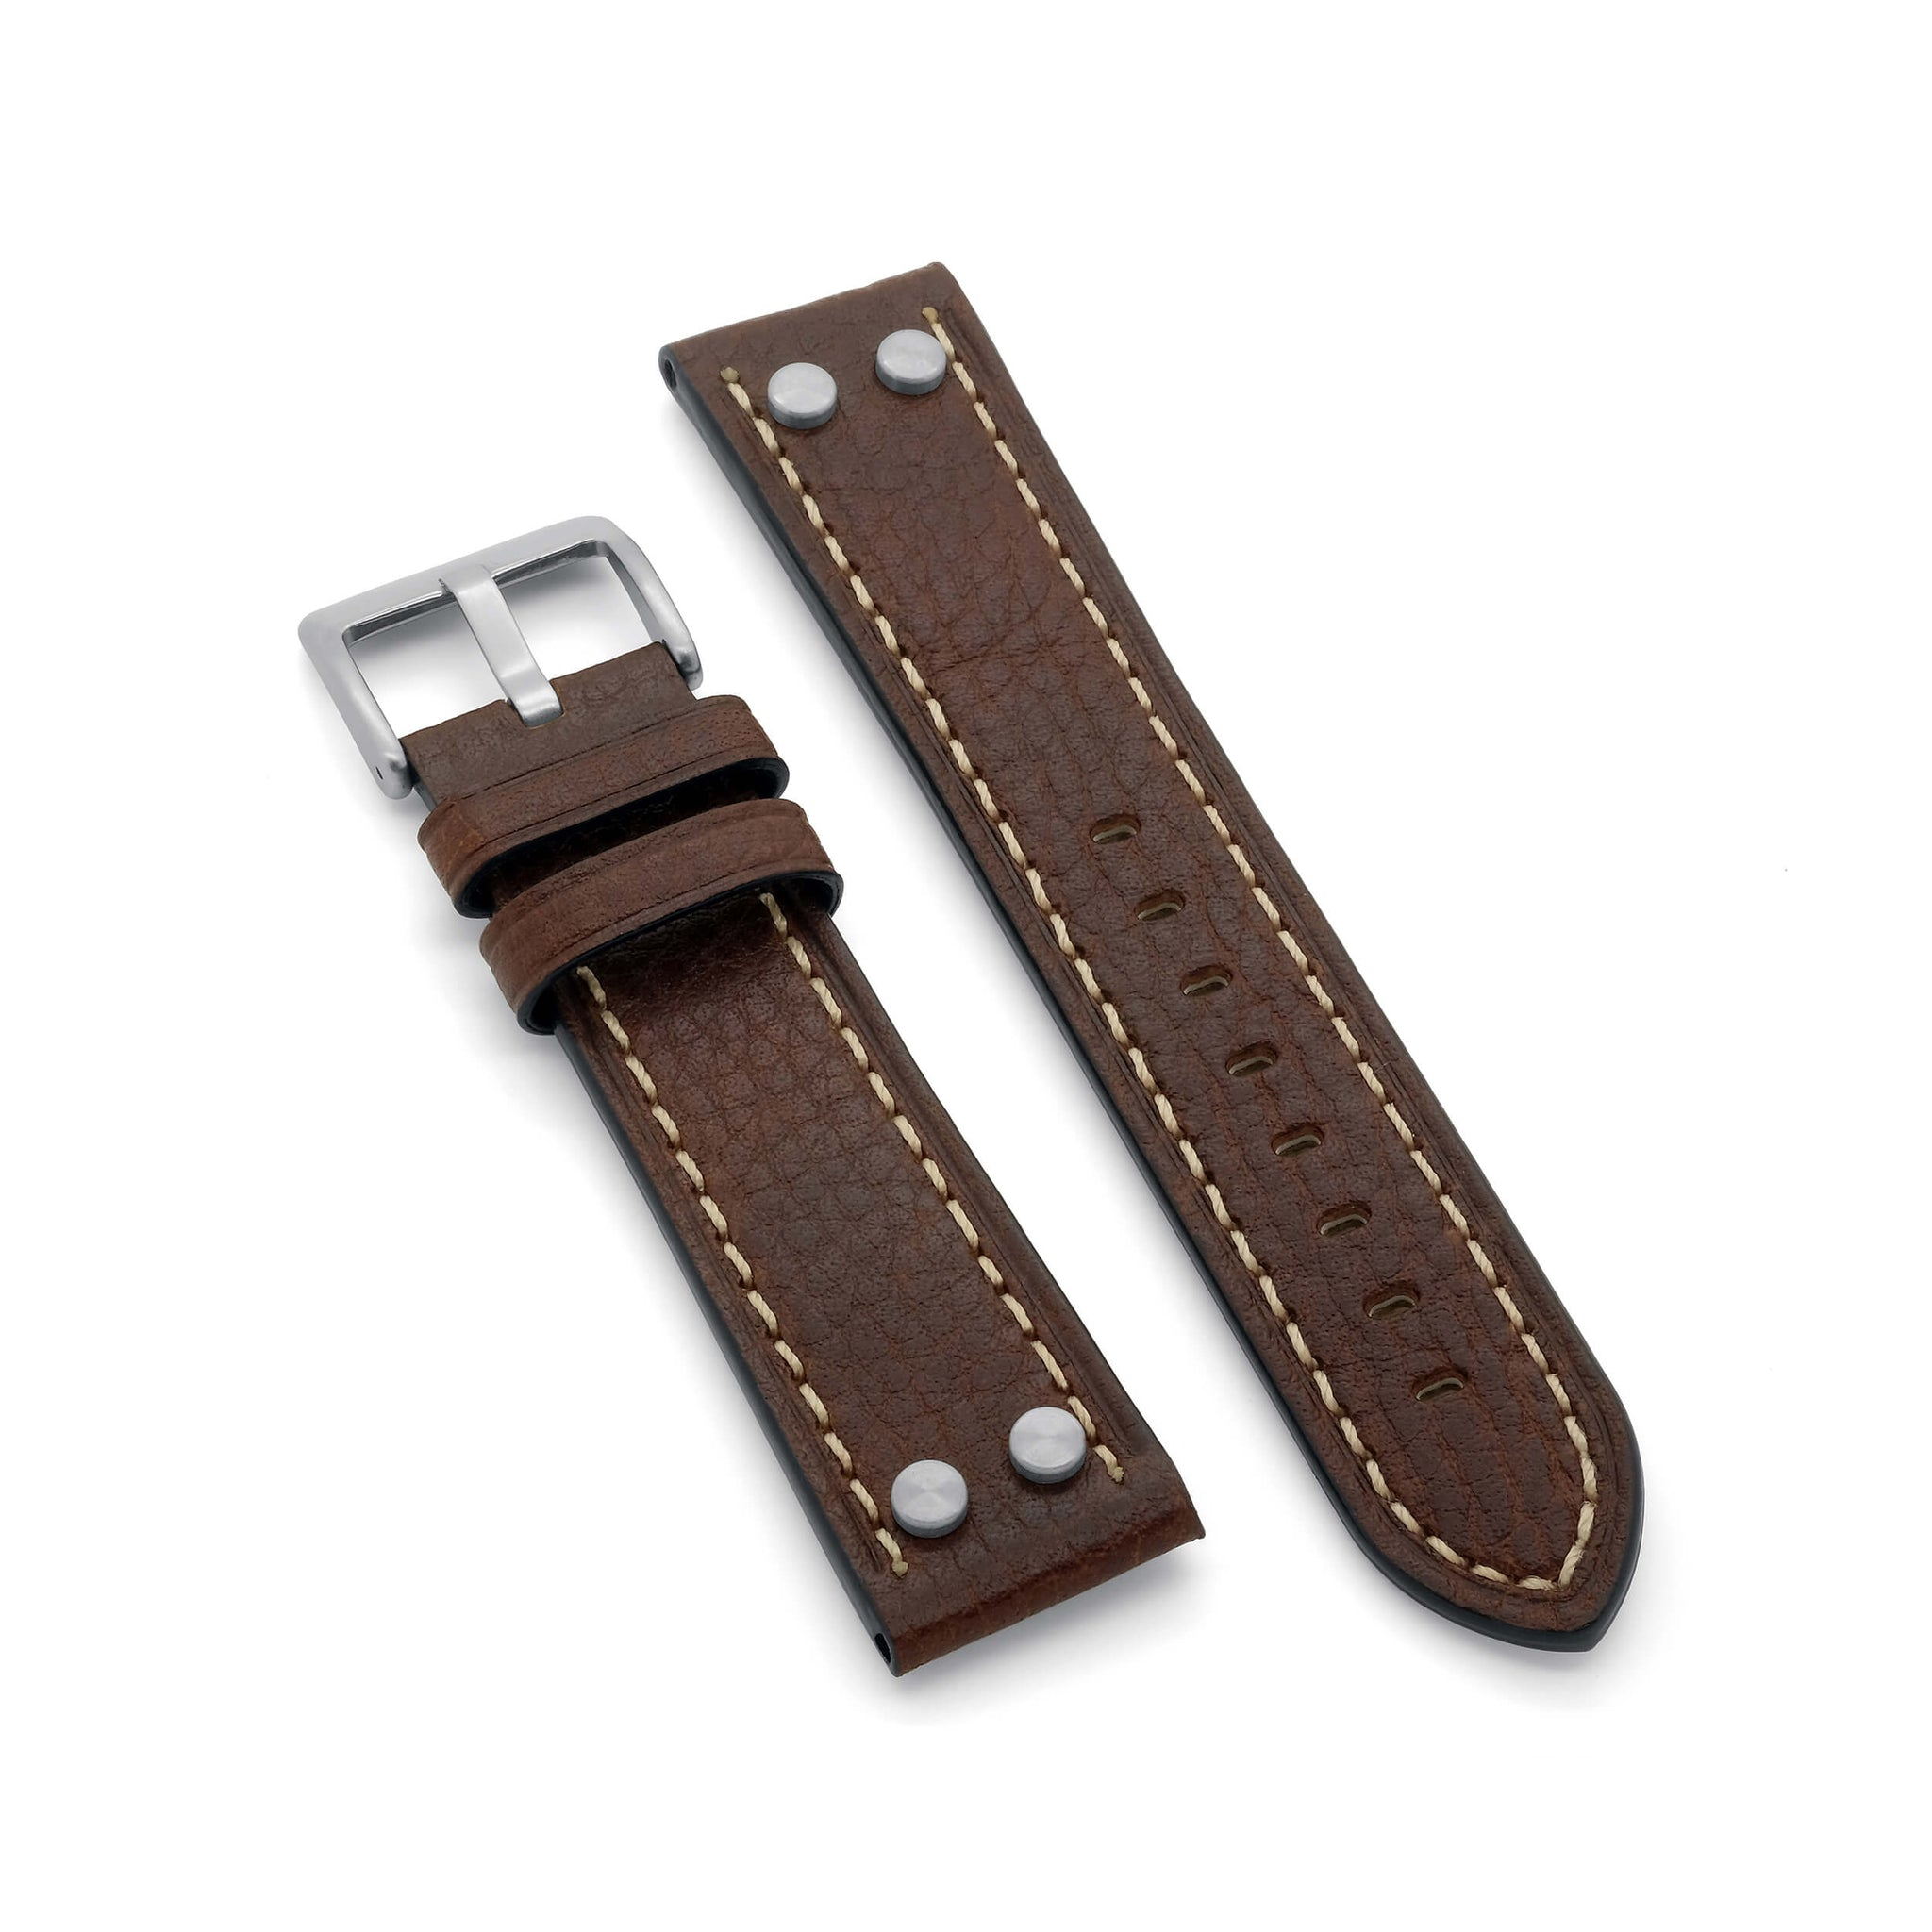 'Vintage Aviator' Leather Watch Strap (Brown)